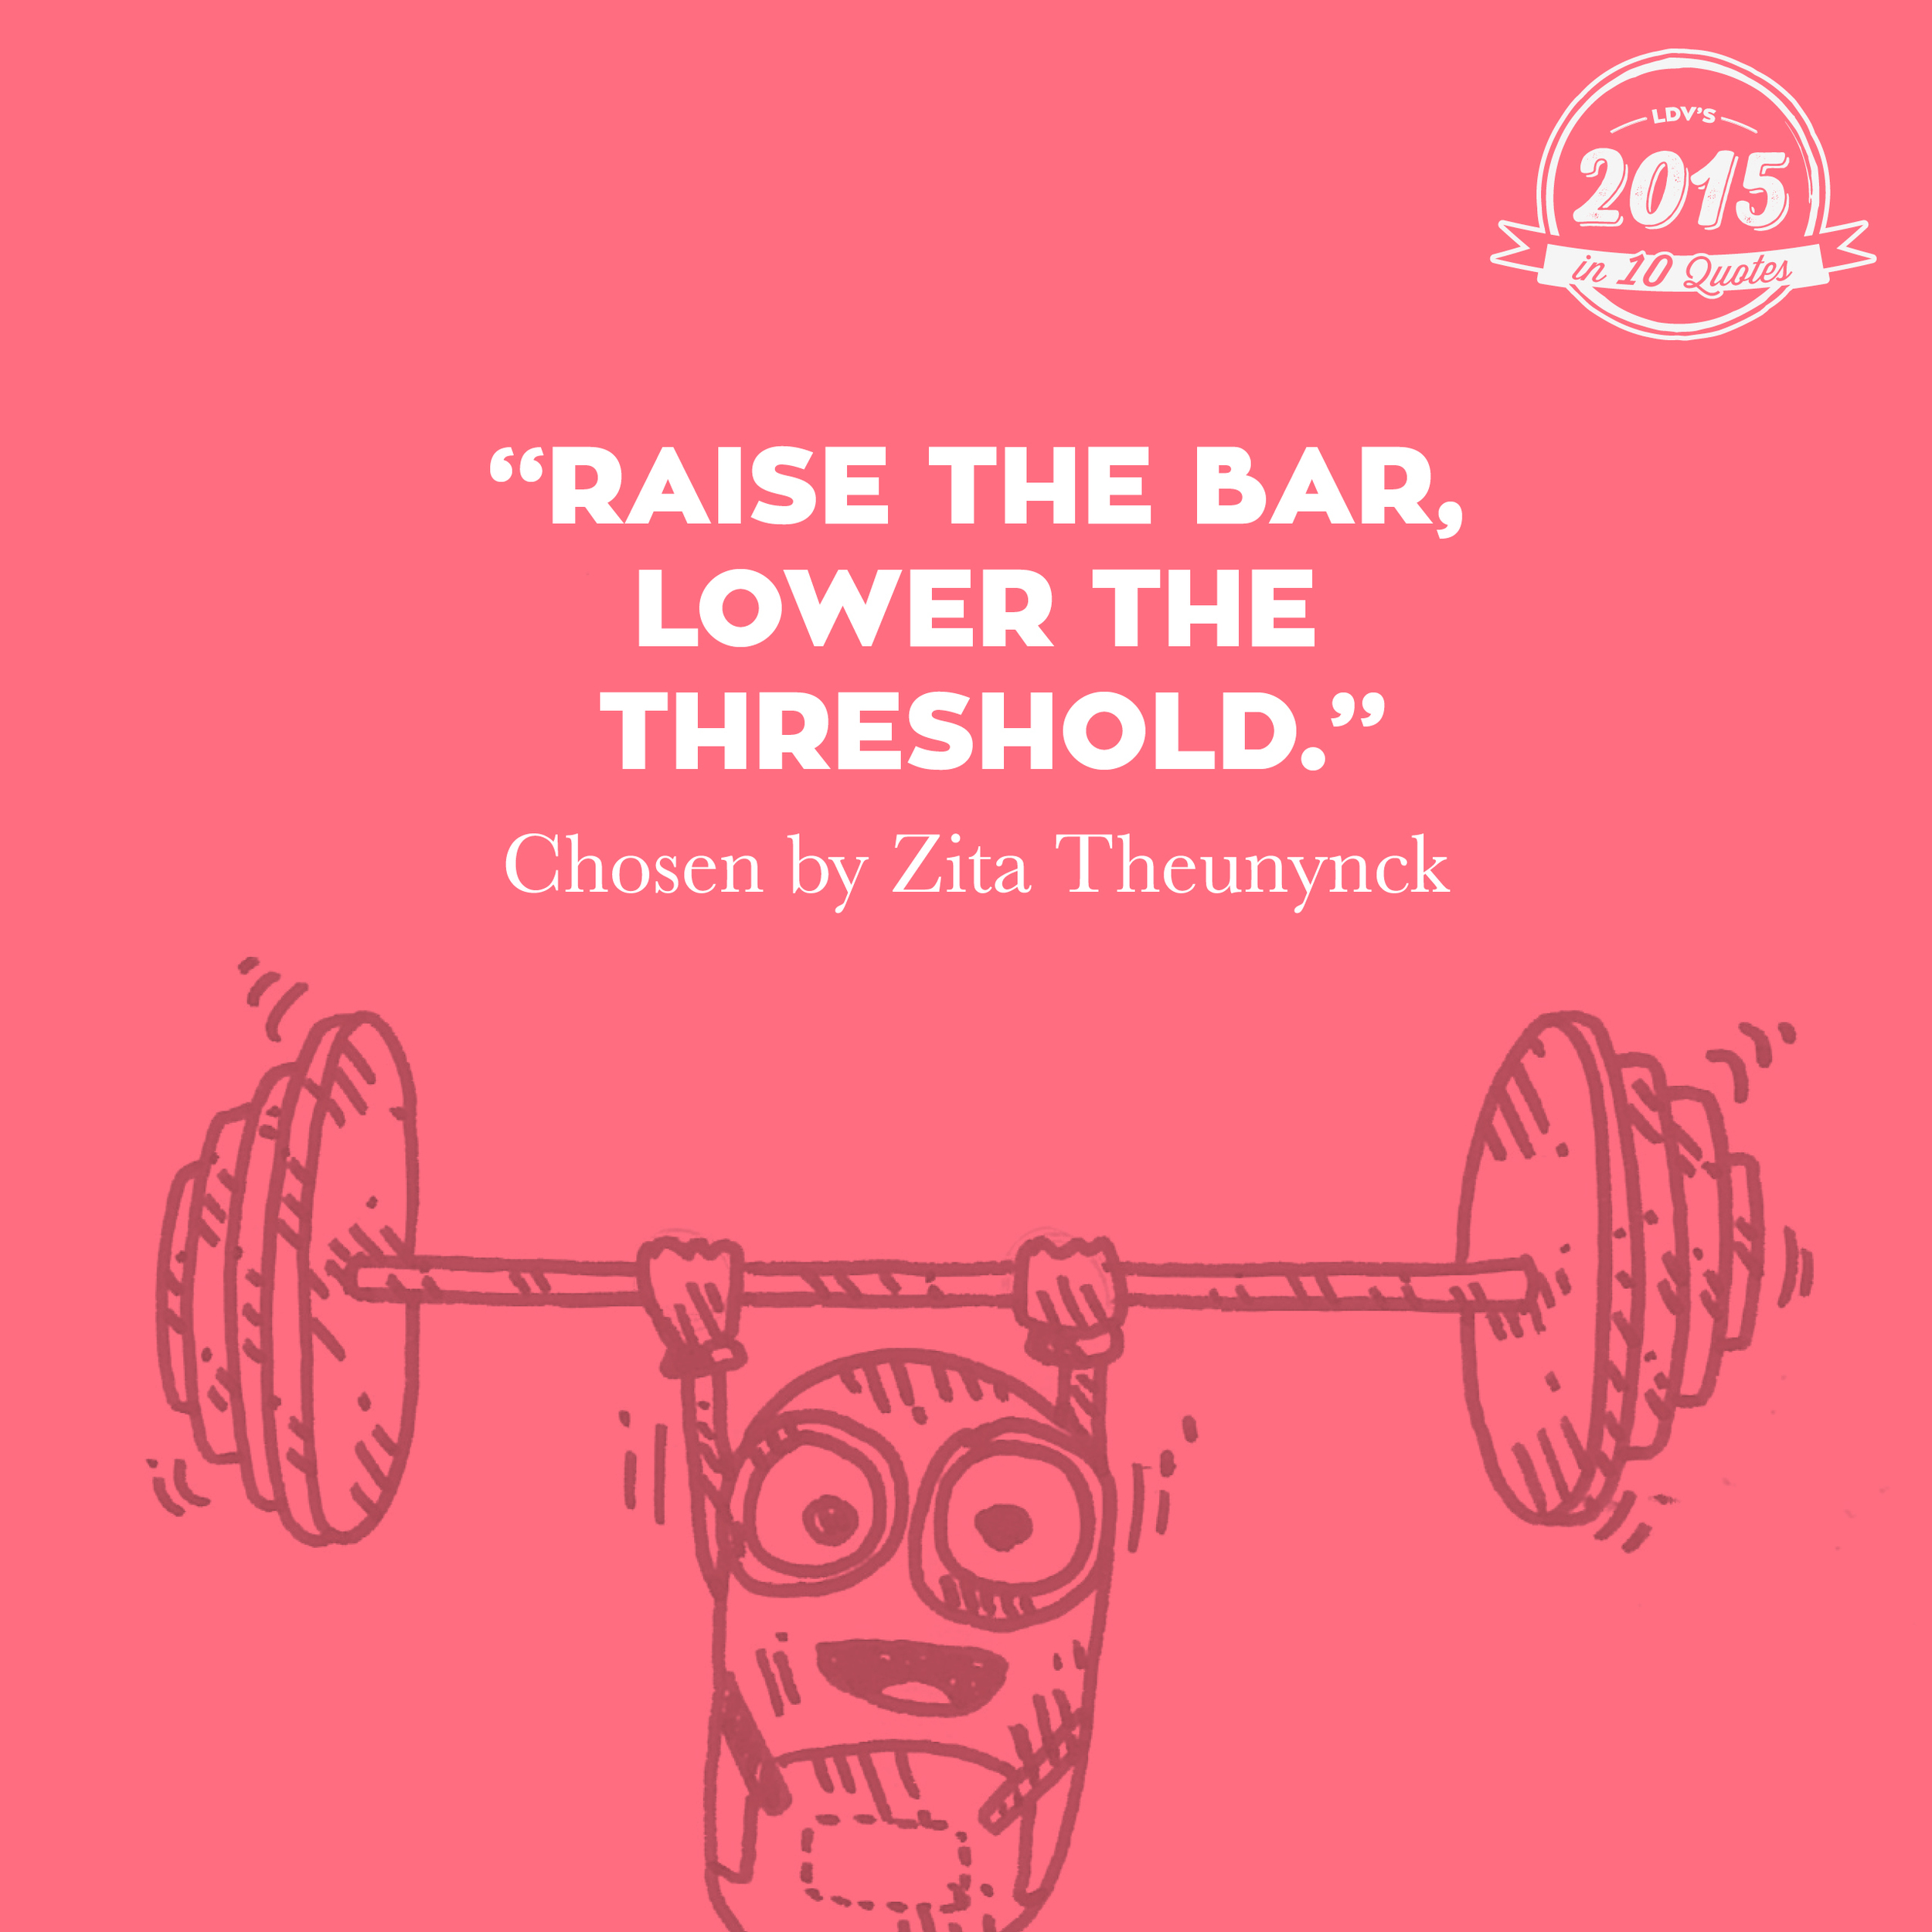 """""""Raise the bar, lower the threshold."""" –Zita Theunynck  I heard this quote at the Eurobest Festival in Antwerp. Michael Vromans of DPDK said, 'We have to keep raising the bar in what we're doing, but we definitely can't lose sight of the audience. The goal must always be to reach as many people as possible to whom this is relevant. We do not want to exclude people purely because of technology.' And that ties in perfectly with our 'we reach the many' mindset. That's why I never want to let go of this quote. #2015in10quotes #thisisLDV       Normal   0       21       false   false   false     EN-US   JA   X-NONE                                                                                                                                                                                                                                                                                                                                                                                                                                                                                                                                                                                                                                                                                                                                                                                                                                                          /* Style Definitions */  table.MsoNormalTable {mso-style-name:""""Table Normal""""; mso-tstyle-rowband-size:0; mso-tstyle-colband-size:0; mso-style-noshow:yes; mso-style-priority:99; mso-style-parent:""""""""; mso-padding-alt:0cm 5.4pt 0cm 5.4pt; mso-para-margin:0cm; mso-para-margin-bottom:.0001pt; mso-pagination:widow-orphan; font-size:12.0pt; font-family:""""Calibri"""",sans-serif; mso-ascii-font-family:Calibri; mso-ascii-theme-font:minor-latin; mso-hansi-font-family:Calibri; mso-hansi-theme-font:minor-latin; mso-bidi-font-family:""""Times New Roman""""; mso-bidi-theme-font:"""